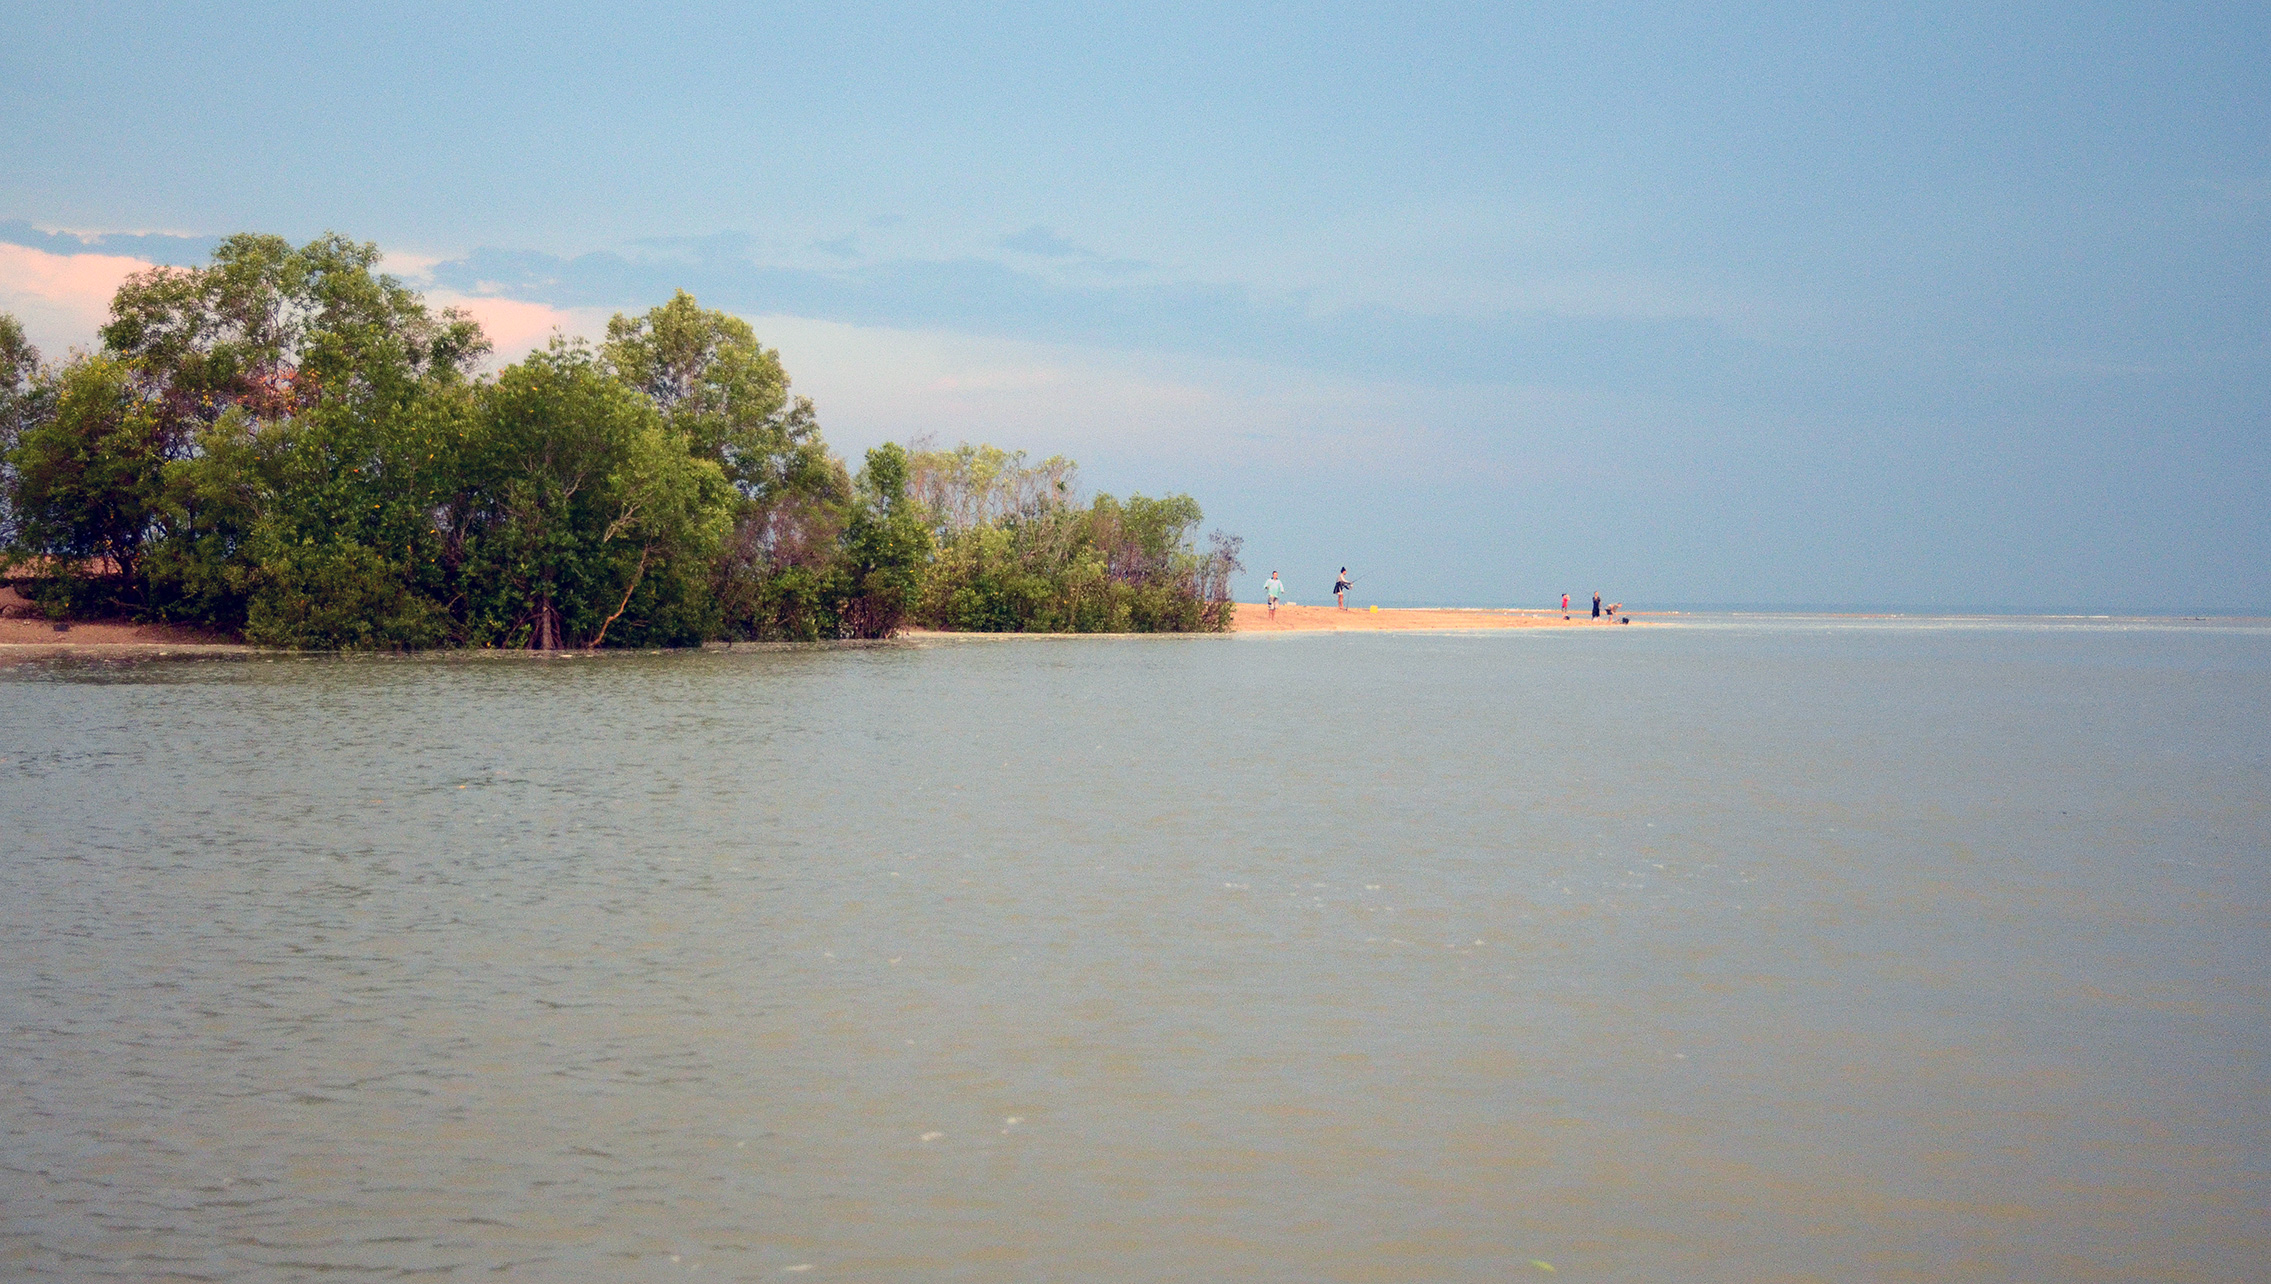 Hopeful anglers fishing from a sandspit at the mouth of Buffalo Creek on Darwin's outskirts. This would not be a smart move at night and even during the day, you need your wits about you!